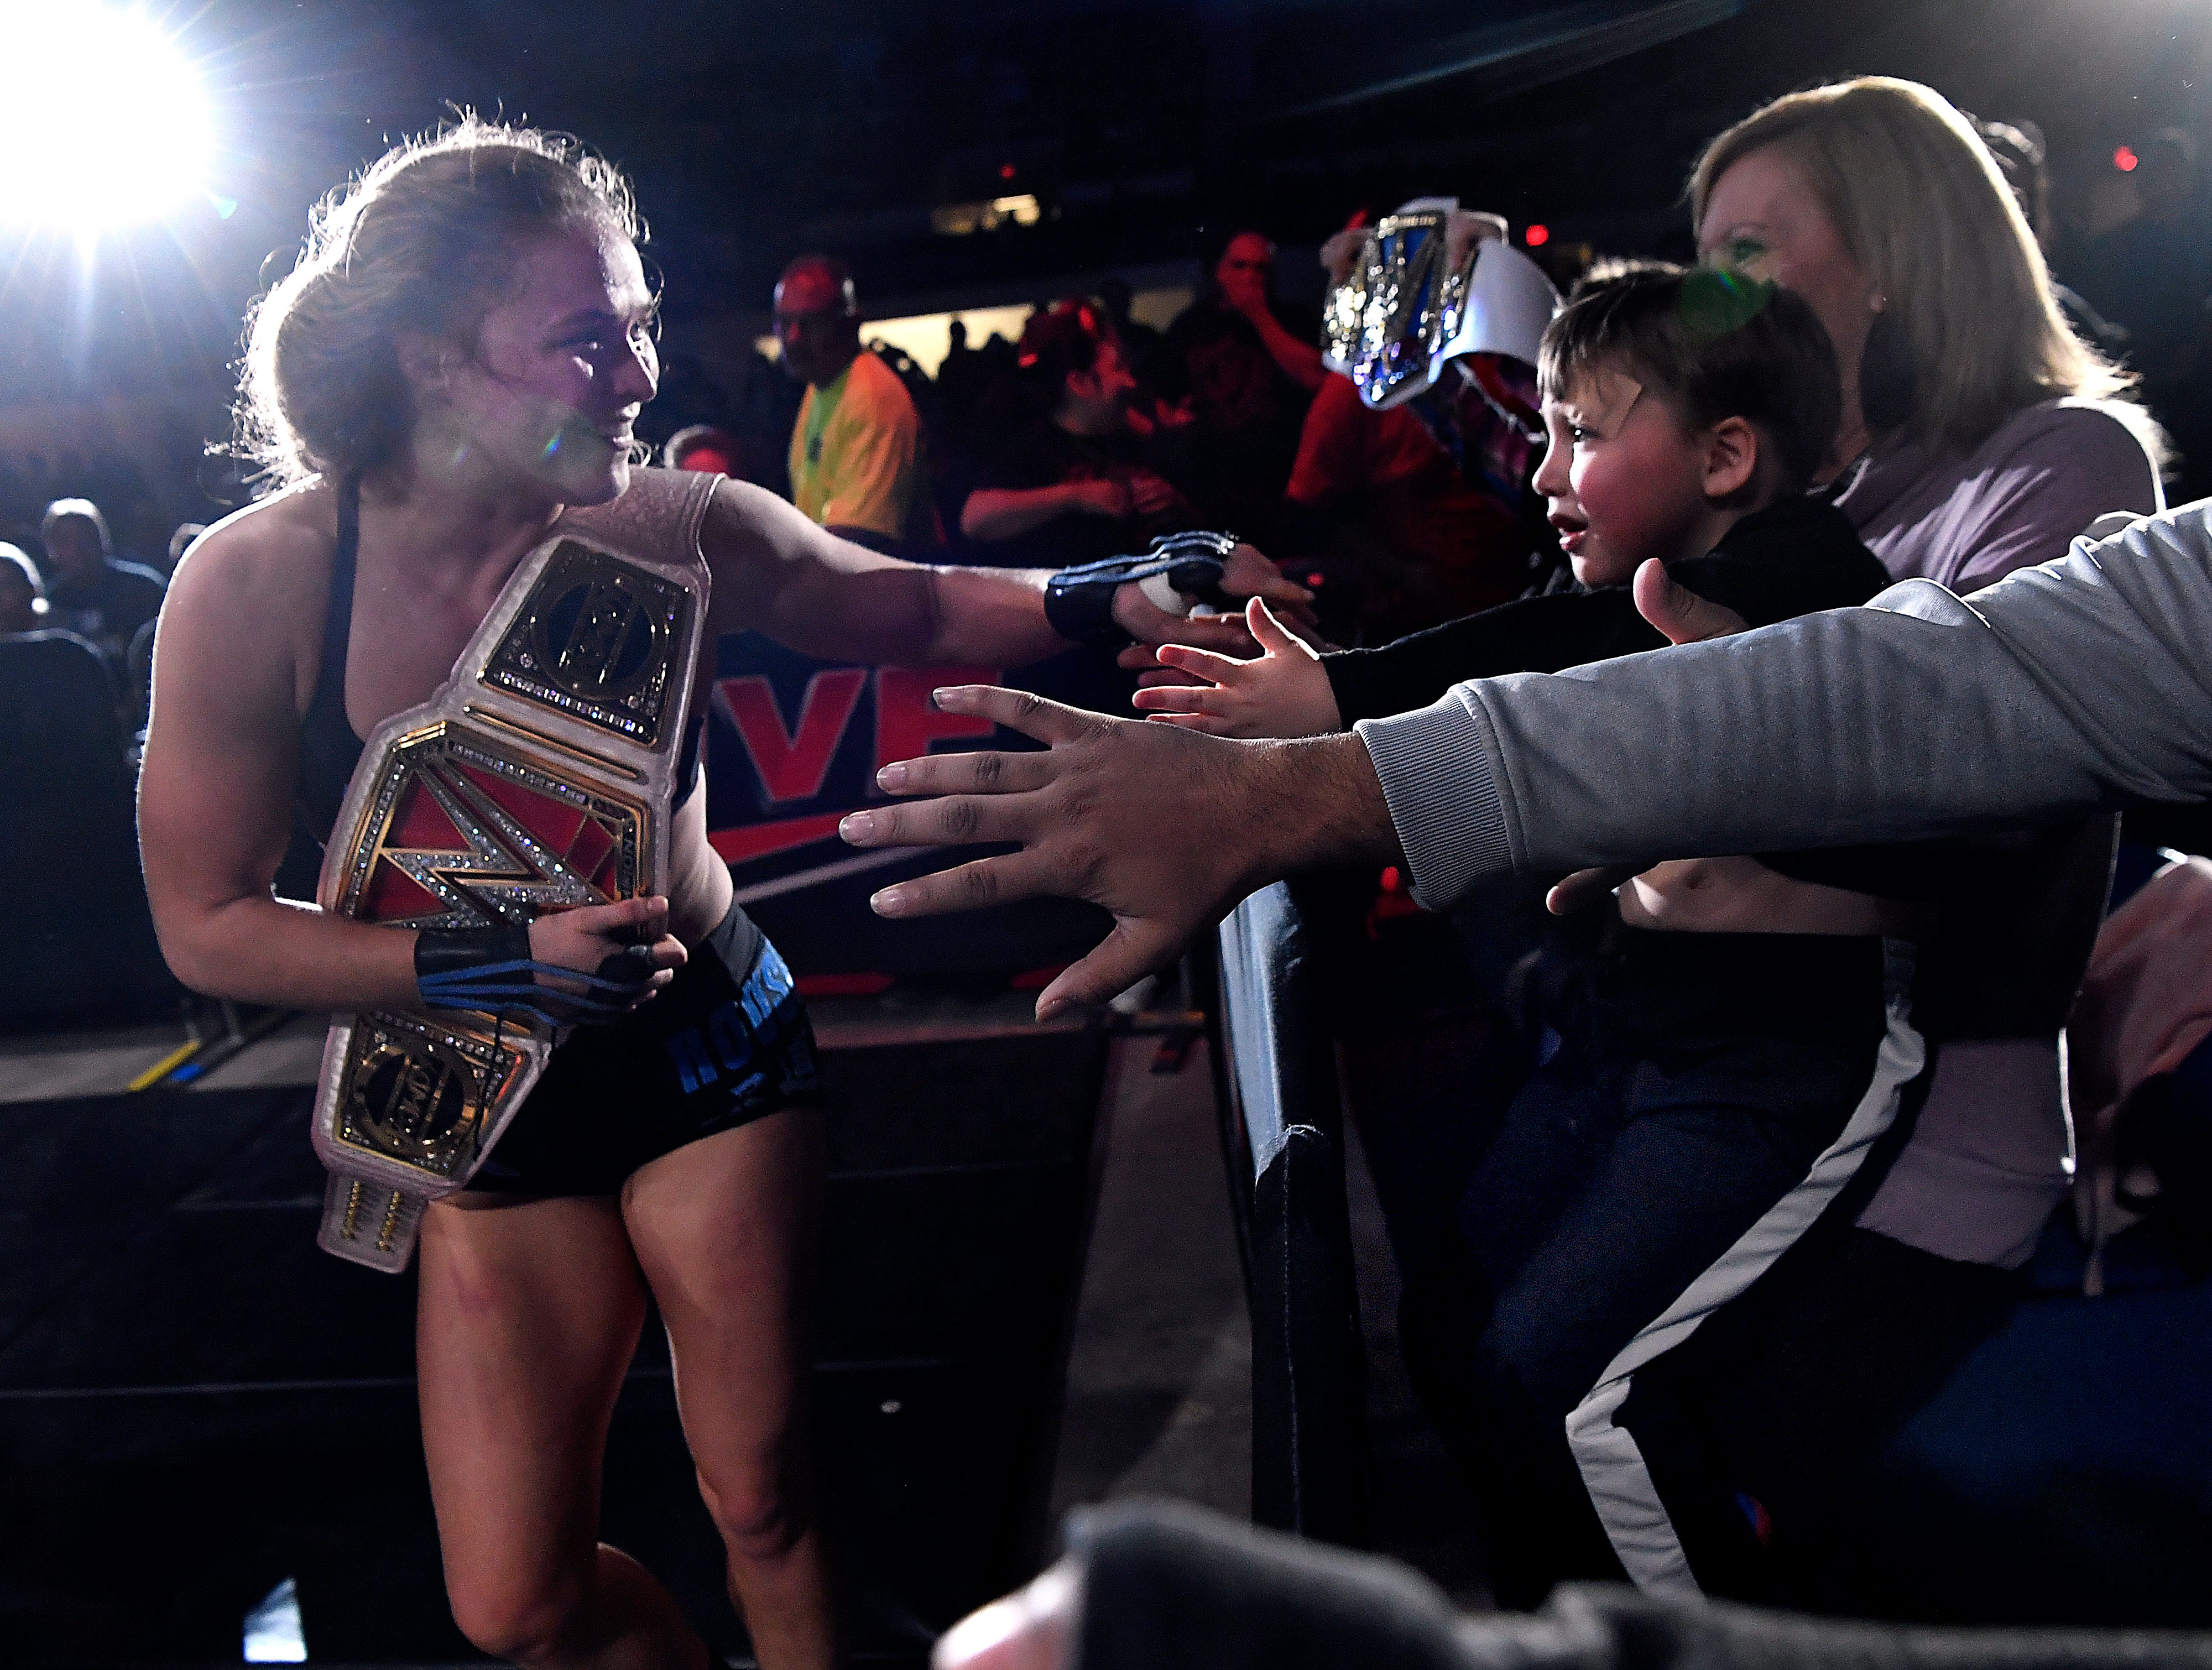 Ronda Rousey briefly takes the hand of 4-year-old Weldon Samford, sitting on the lap of his mother Tammy, after her match during Saturday's WWE Live wrestling event. Held at the Taylor County Coliseum, the evening featured a colorful array of World Wrestling Entertainment stars.